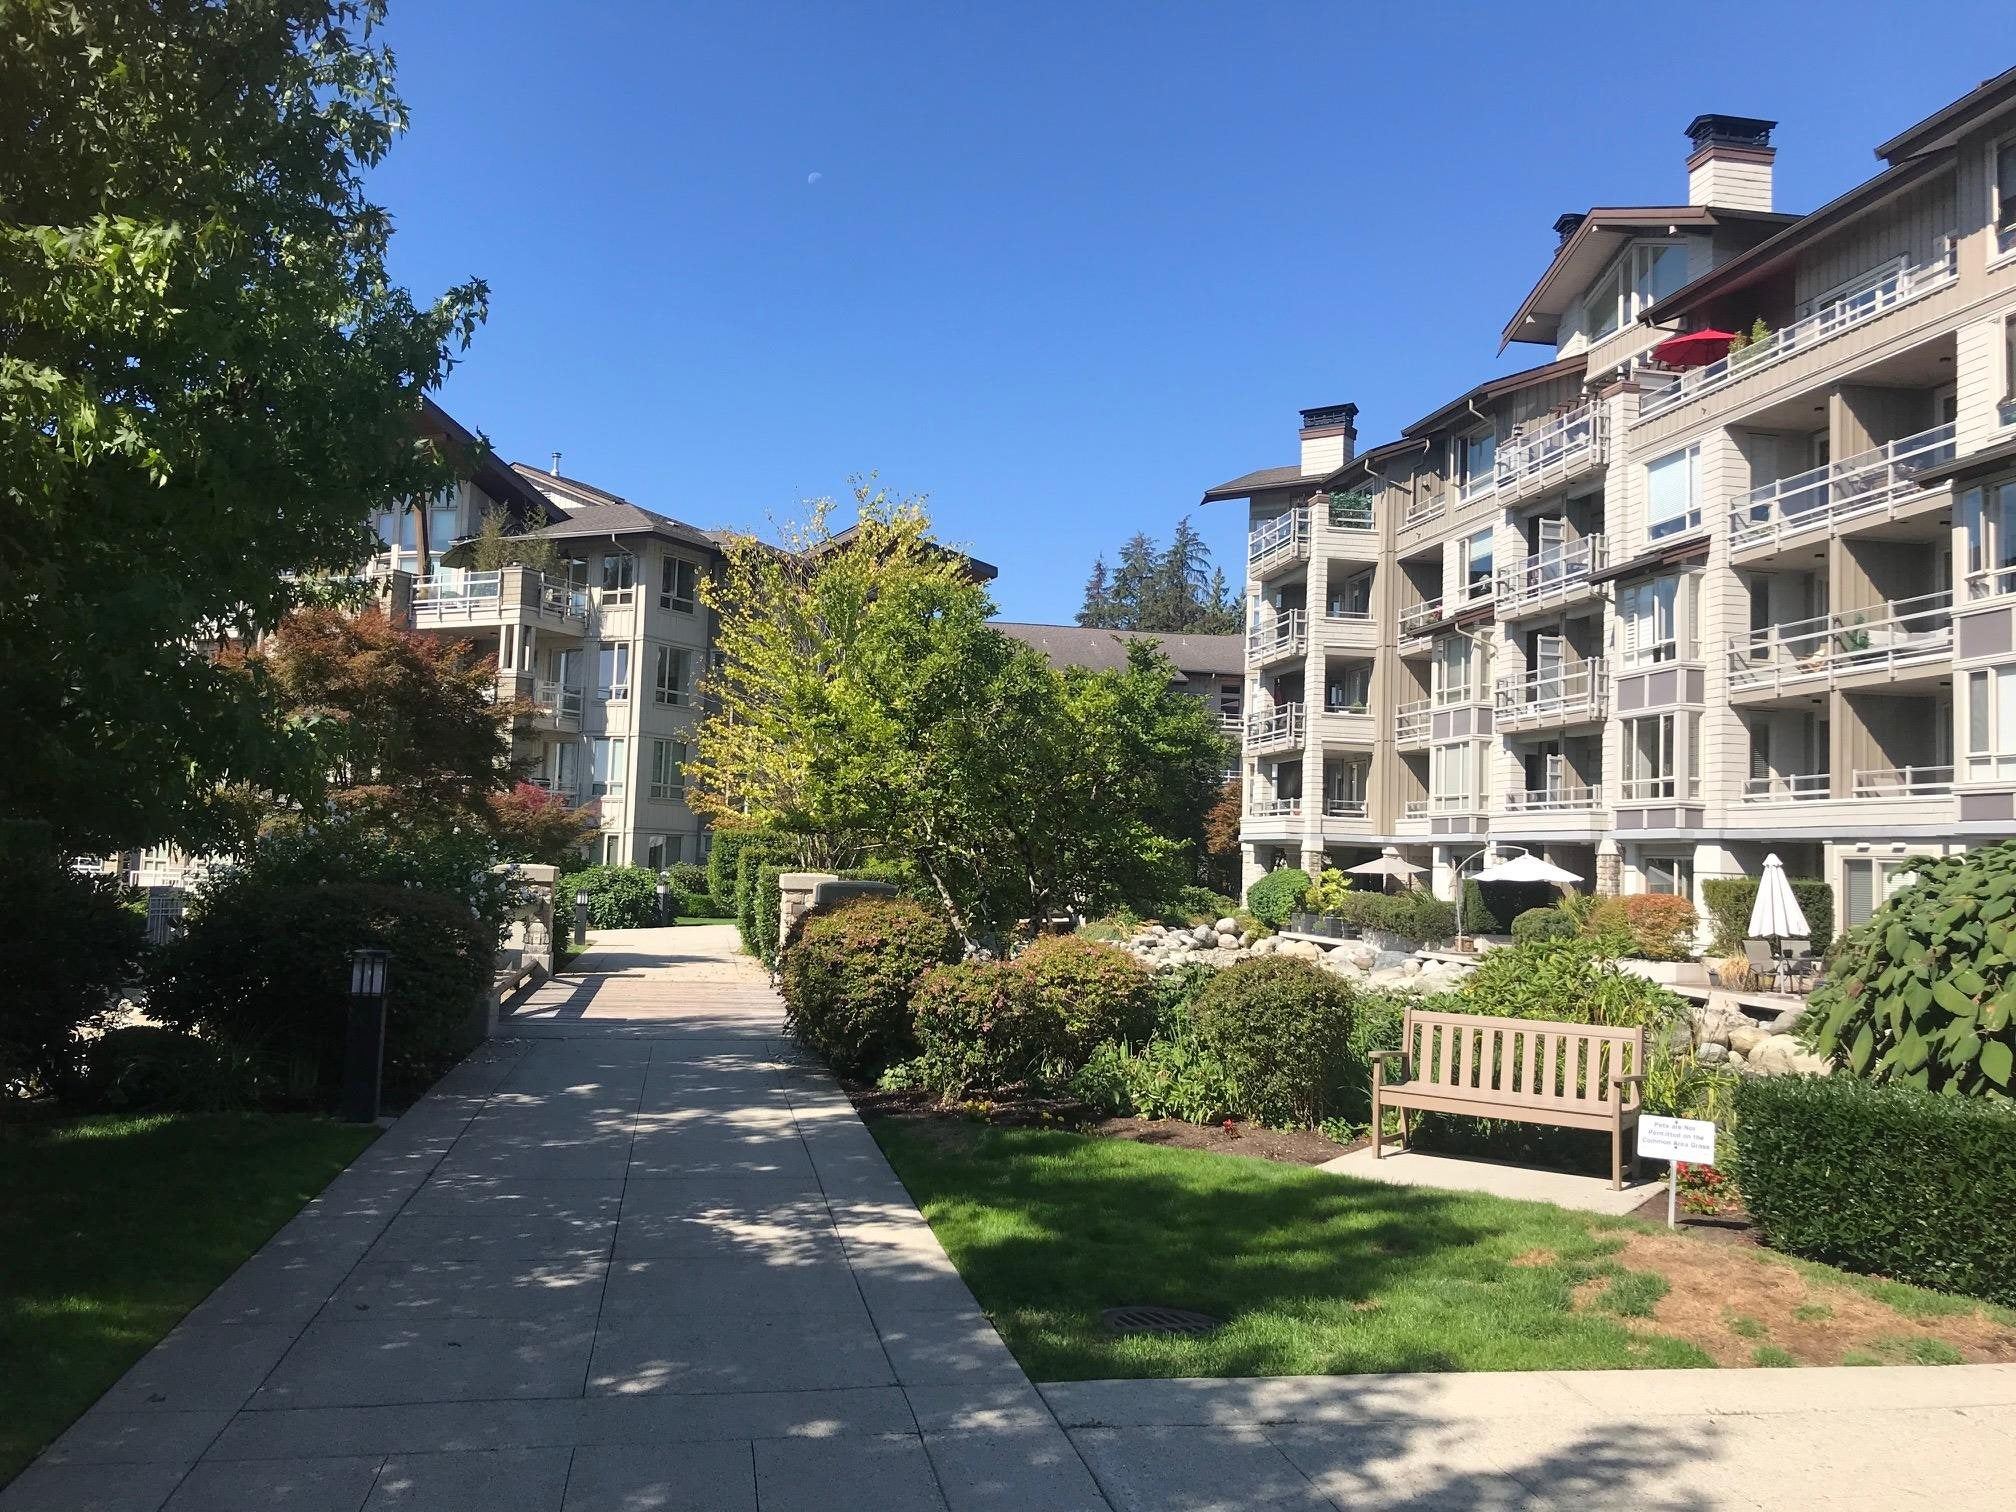 305 560 RAVEN WOODS DRIVE - Roche Point Apartment/Condo for sale, 2 Bedrooms (R2621377) - #1